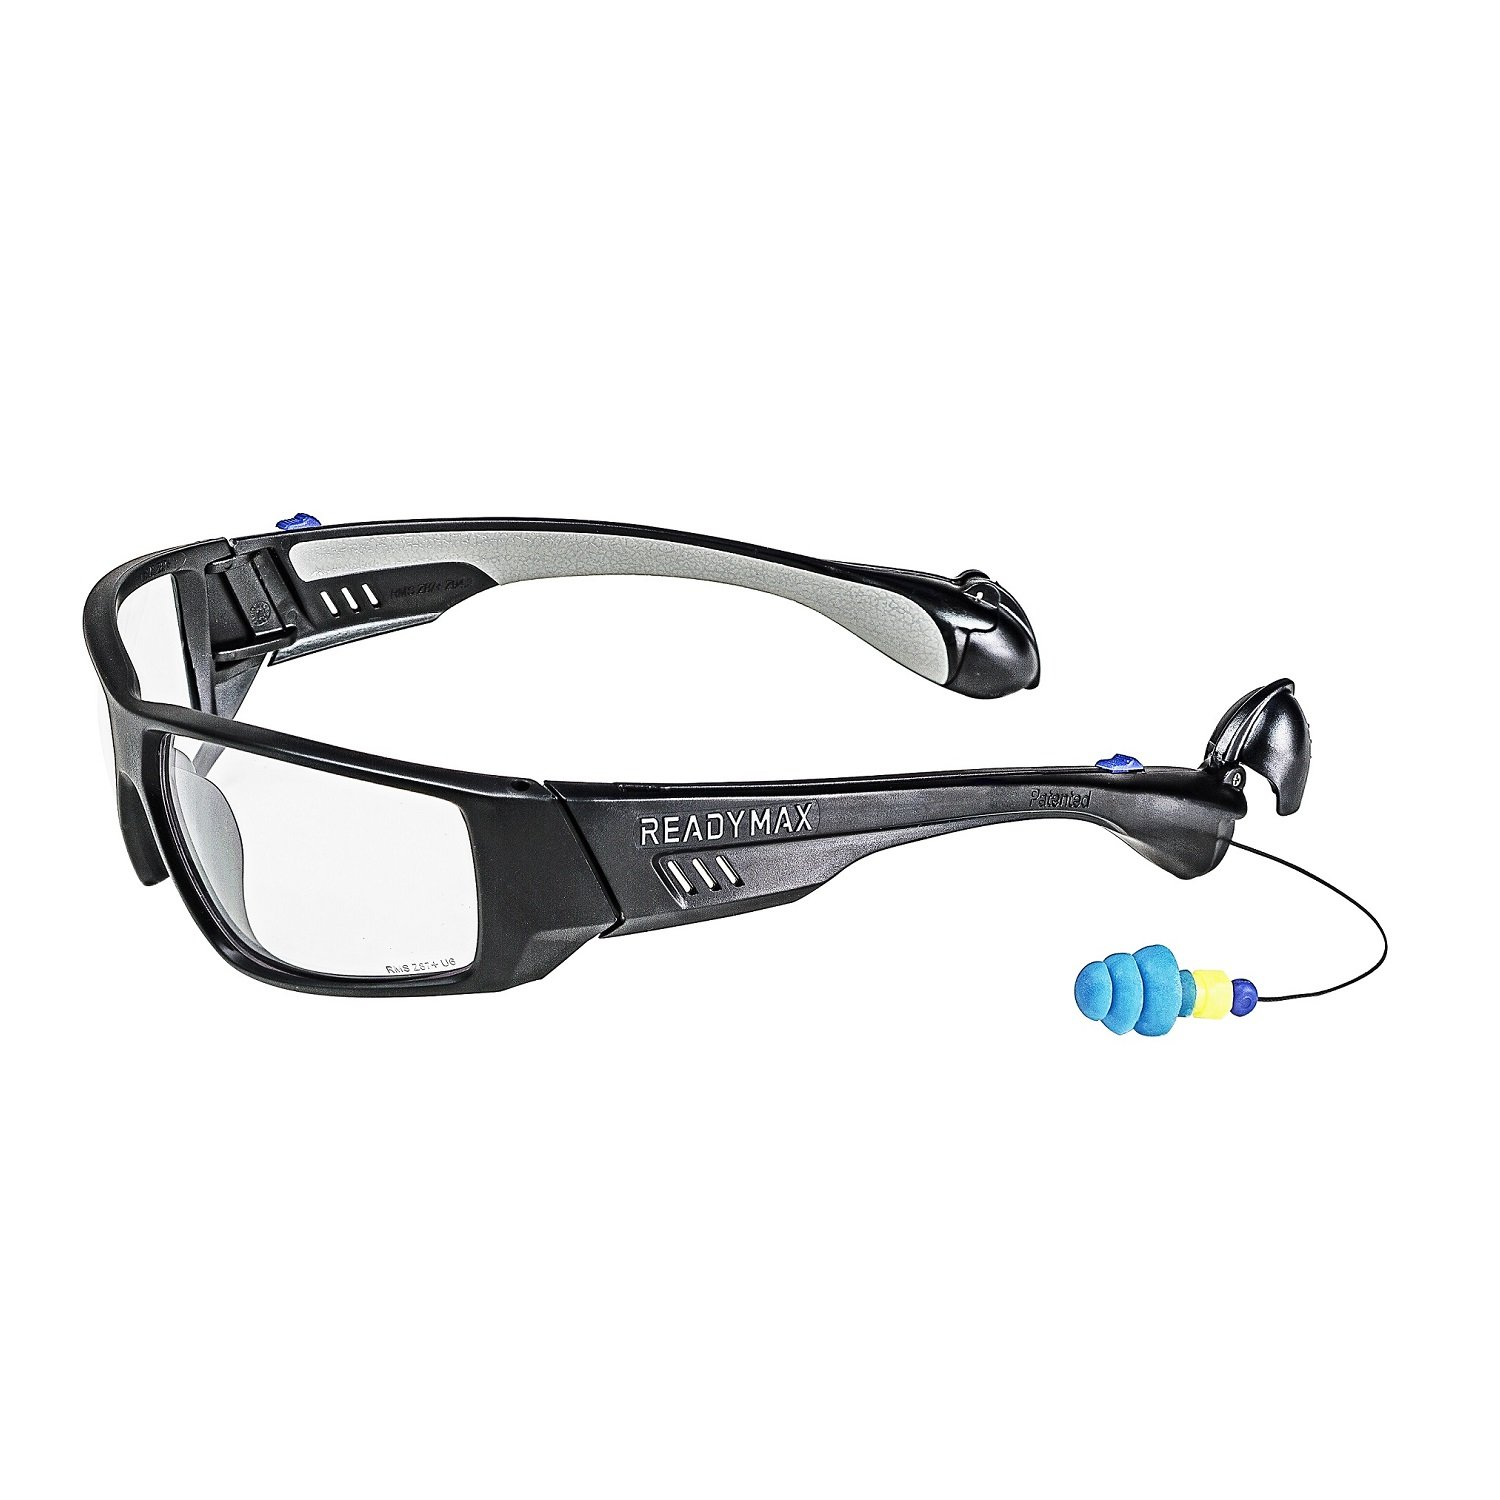 ReadyMax SoundShield Fashion Style, Matte Black Frame, Clear Anti-Fog, Scratch Resistant Safety Glasses w/Built in Hearing Protection by SoundShield